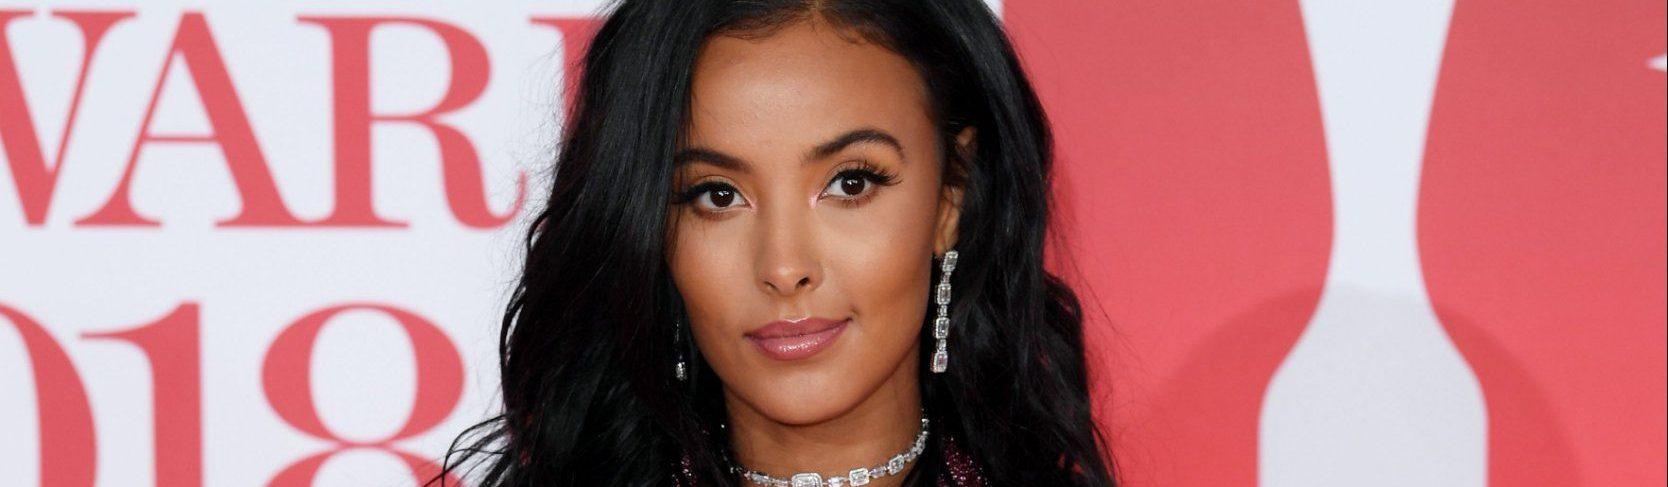 Maya Jama spent years embarrassed by African heritage as she talks about offensive 'dark skin b*****s' tweets